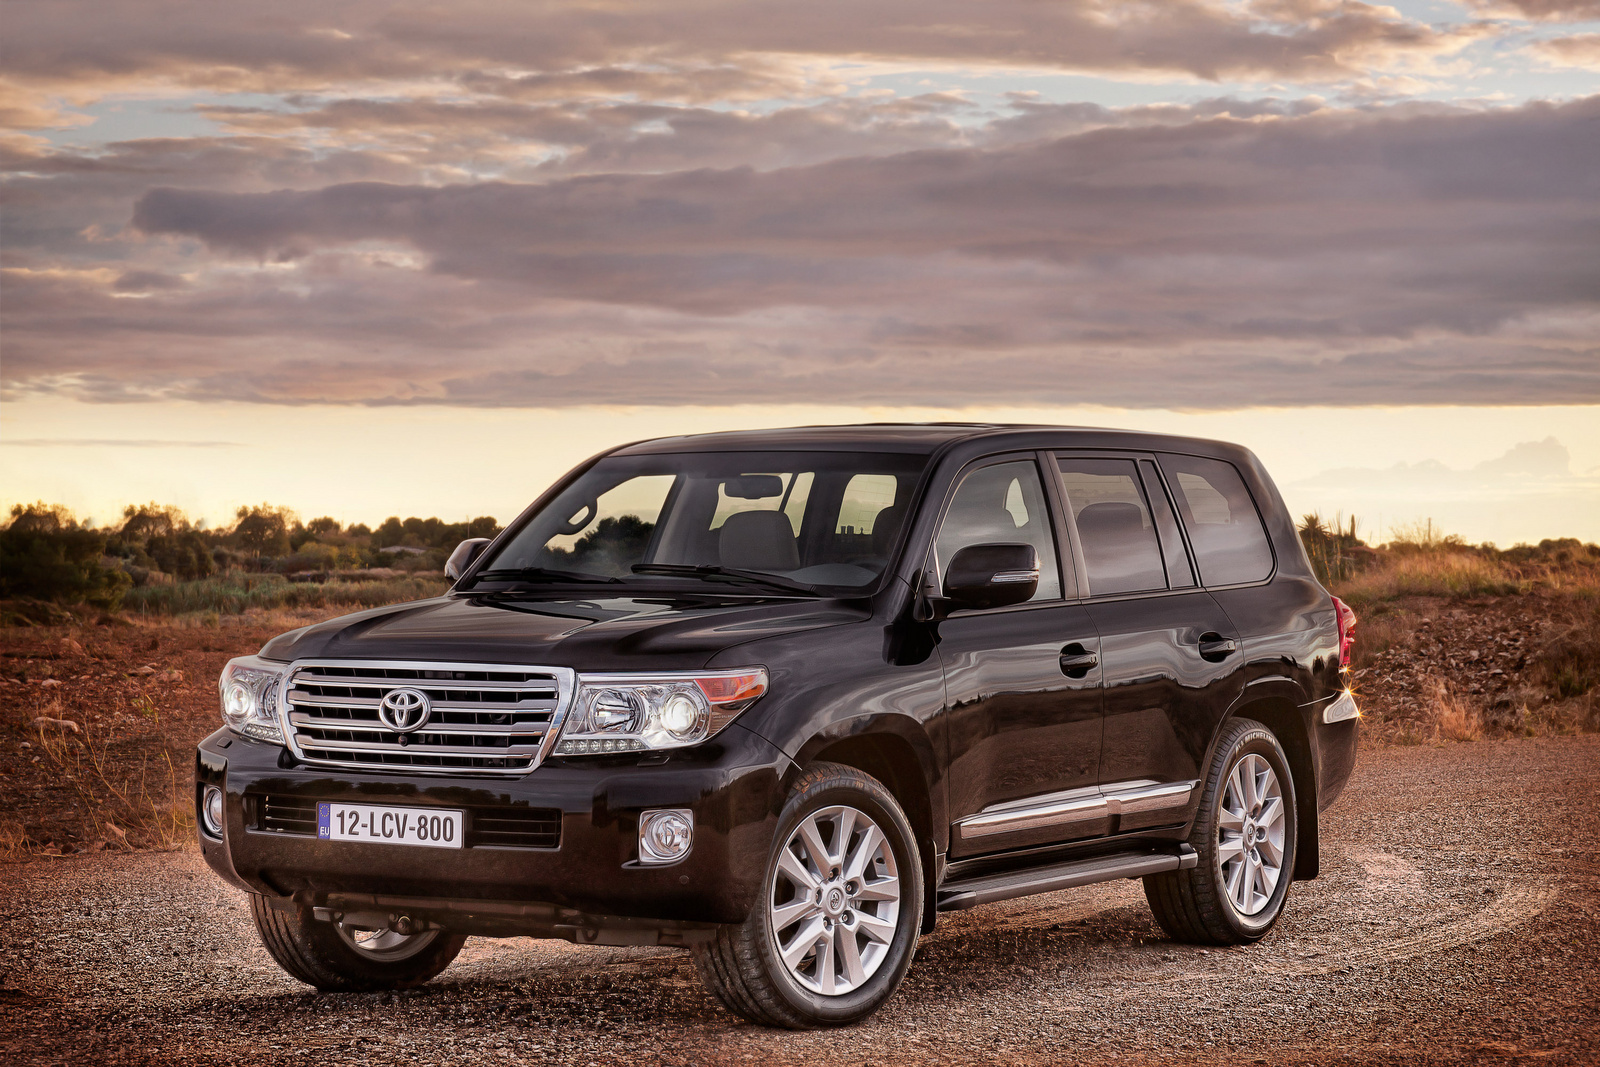 Toyota Land Cruiser #15